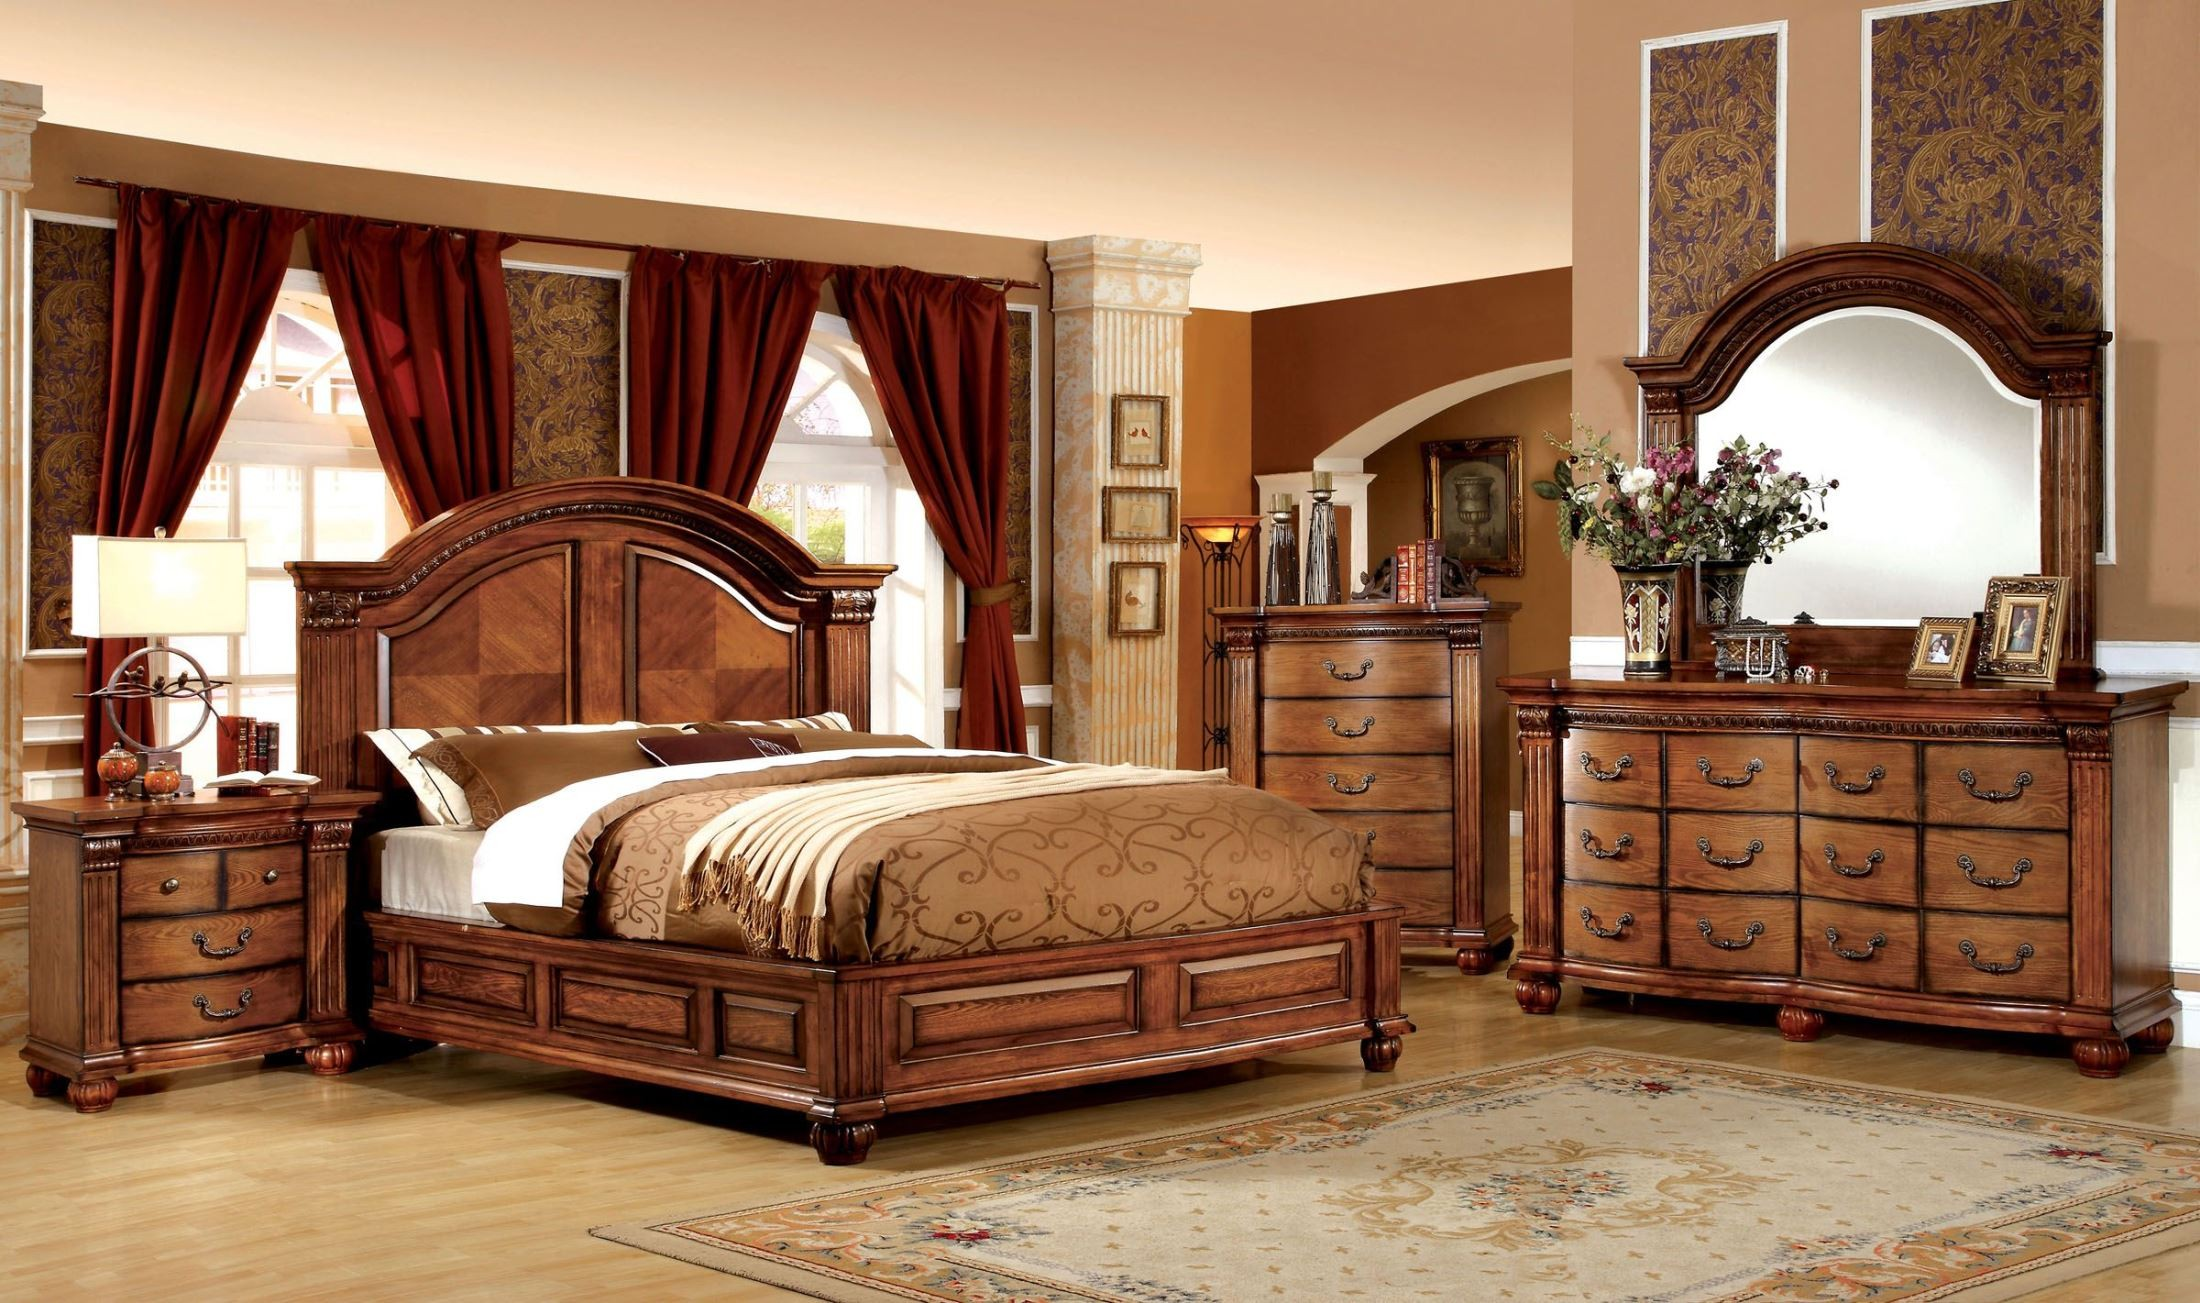 bellagrand antique tobacco oak bedroom set from furniture of america cm7738q bed coleman furniture - Antique Bedroom Sets